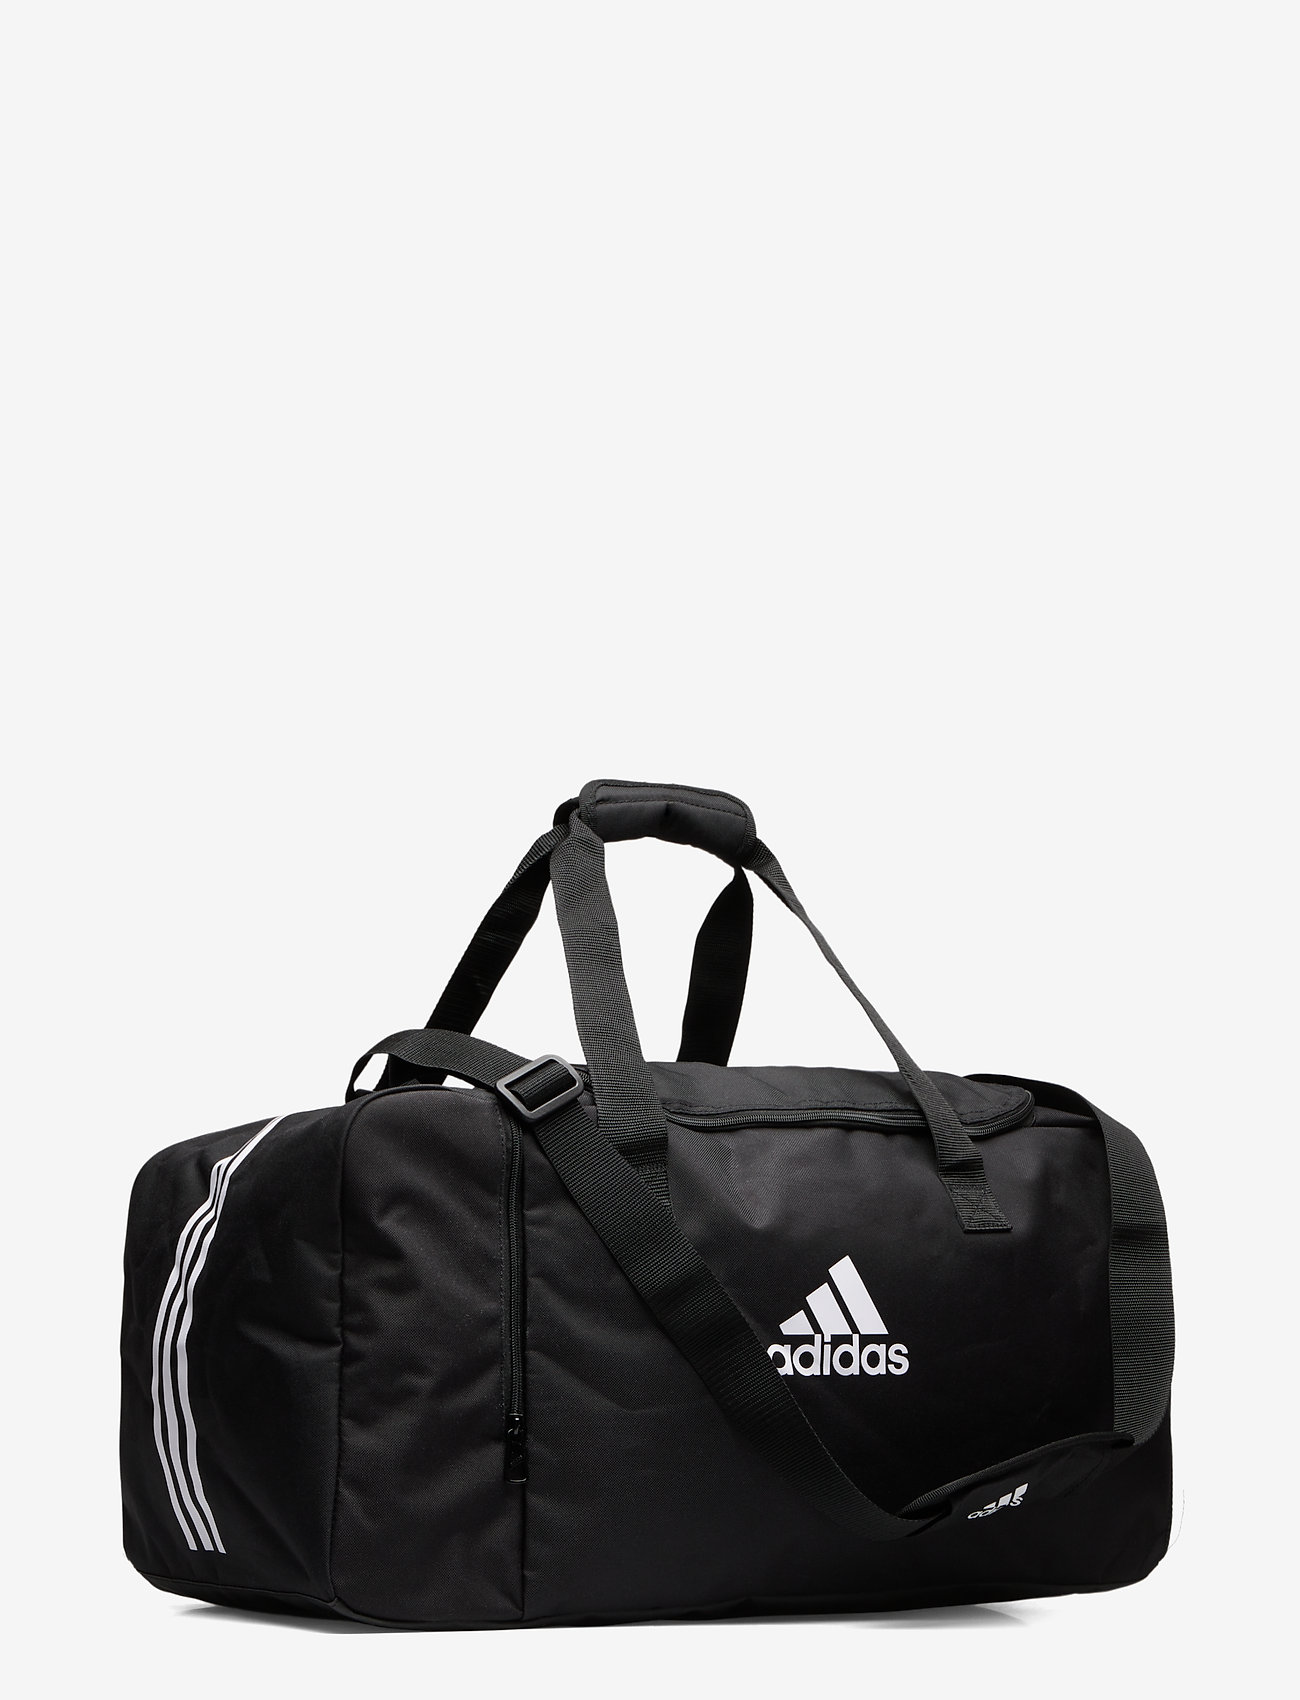 Adidas Performance Tiro Du M Black/white